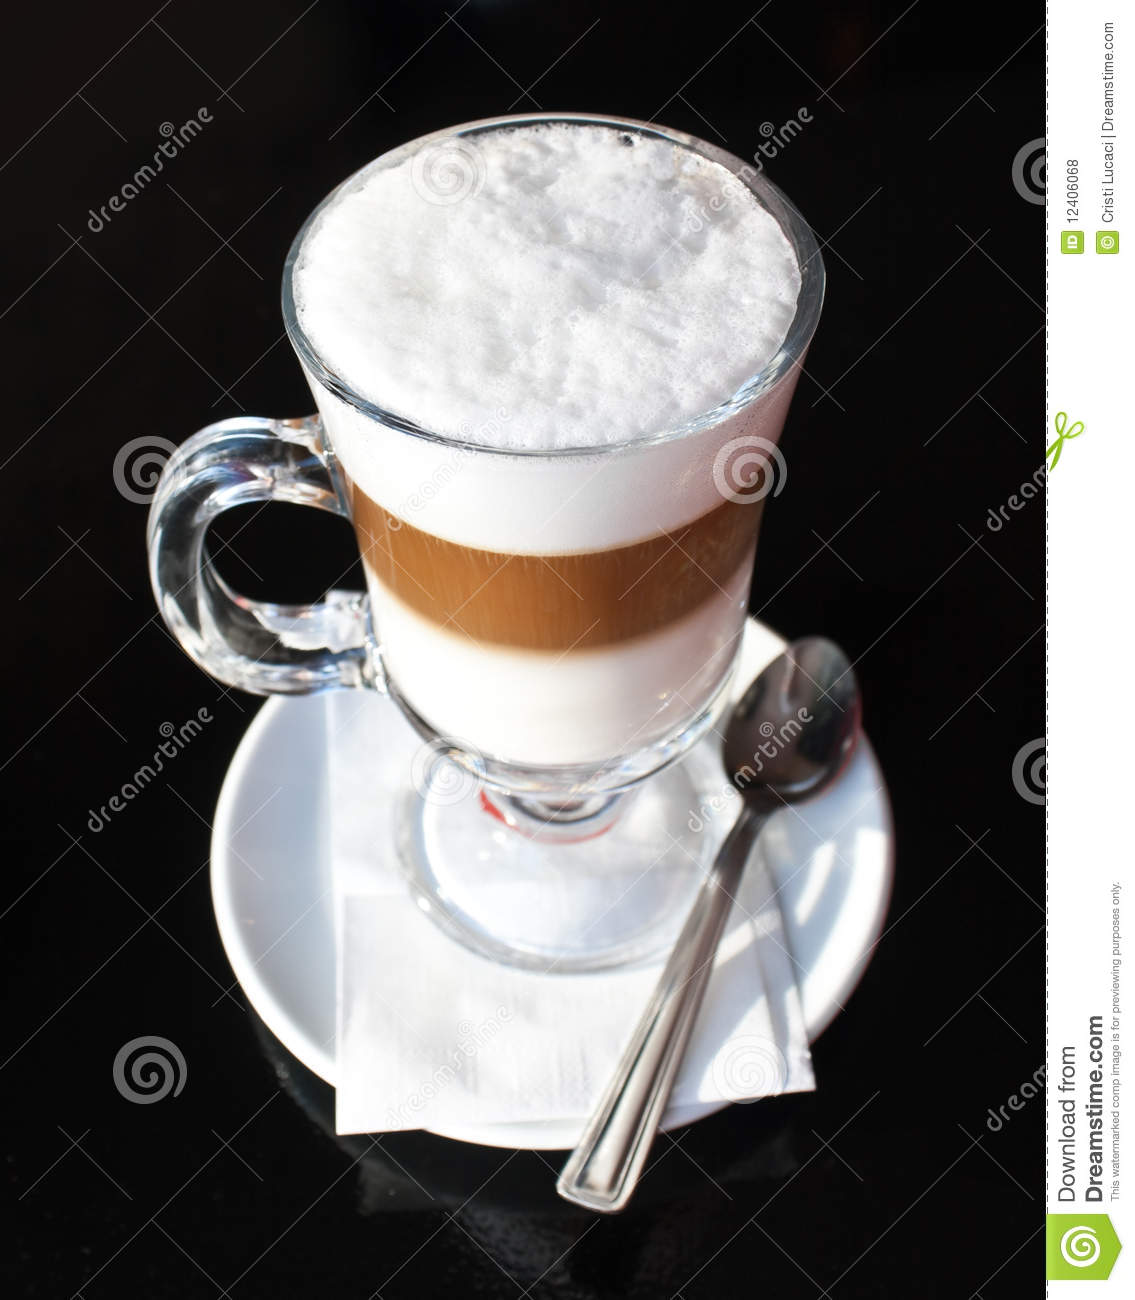 Caffe Latte Caffe Latte Stock Photo Image Of Food Coffee Macchiato 12406068